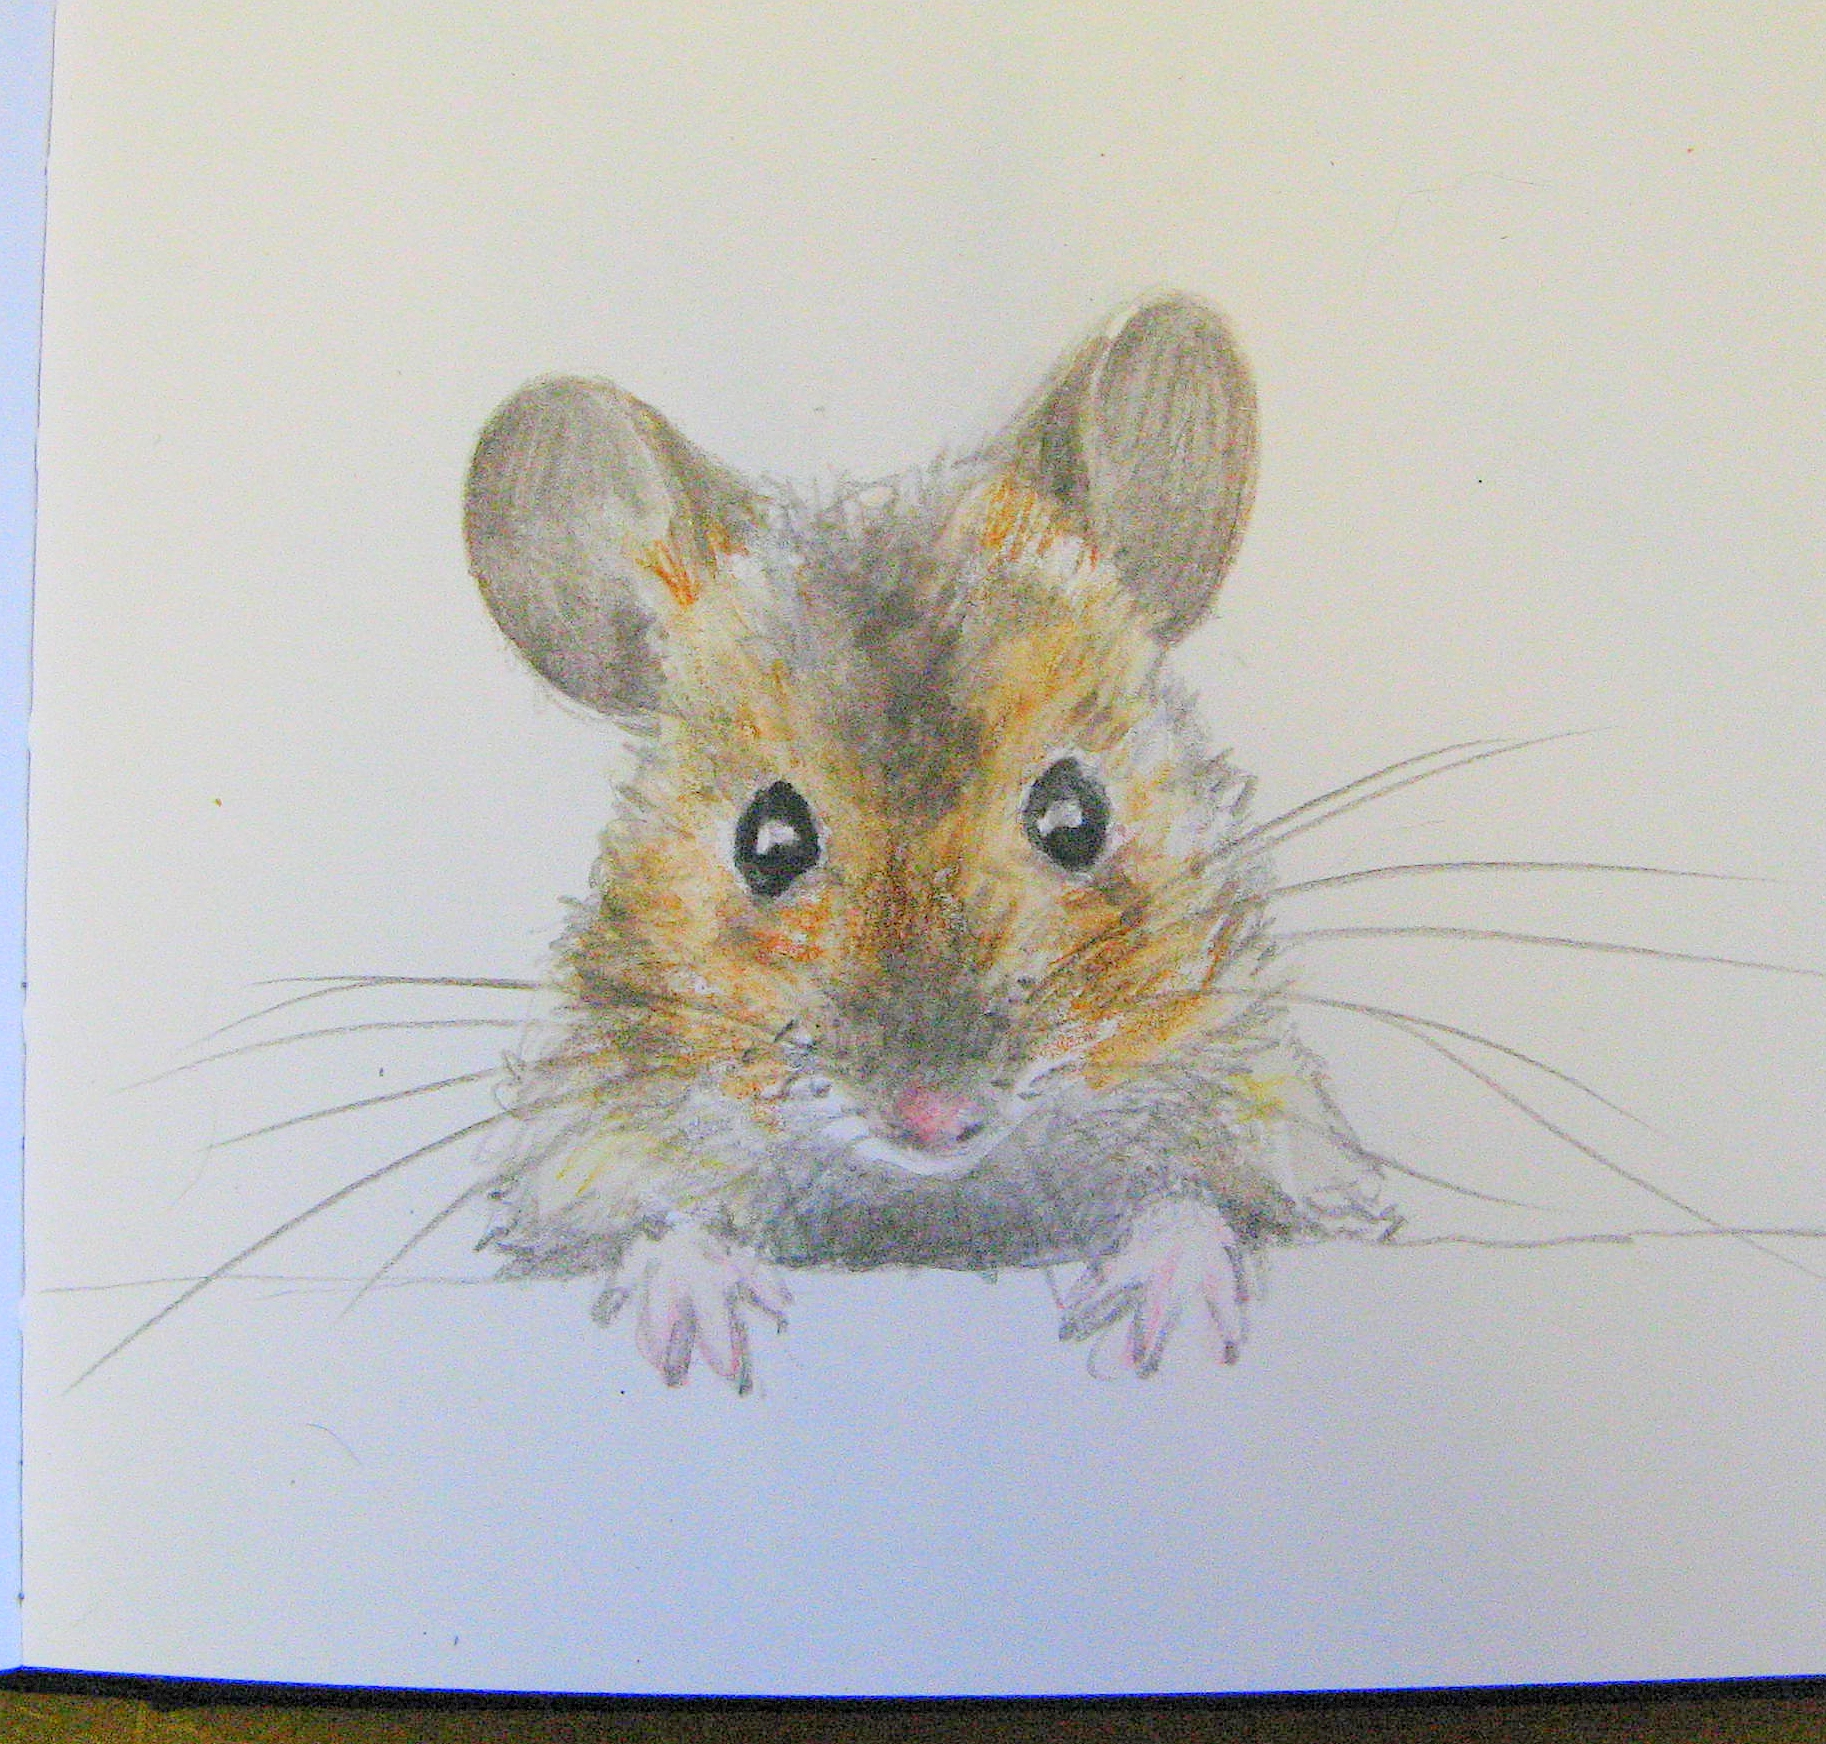 Drawn rodent vintage garden Drawing woodmouse agnesandcora mouse 2